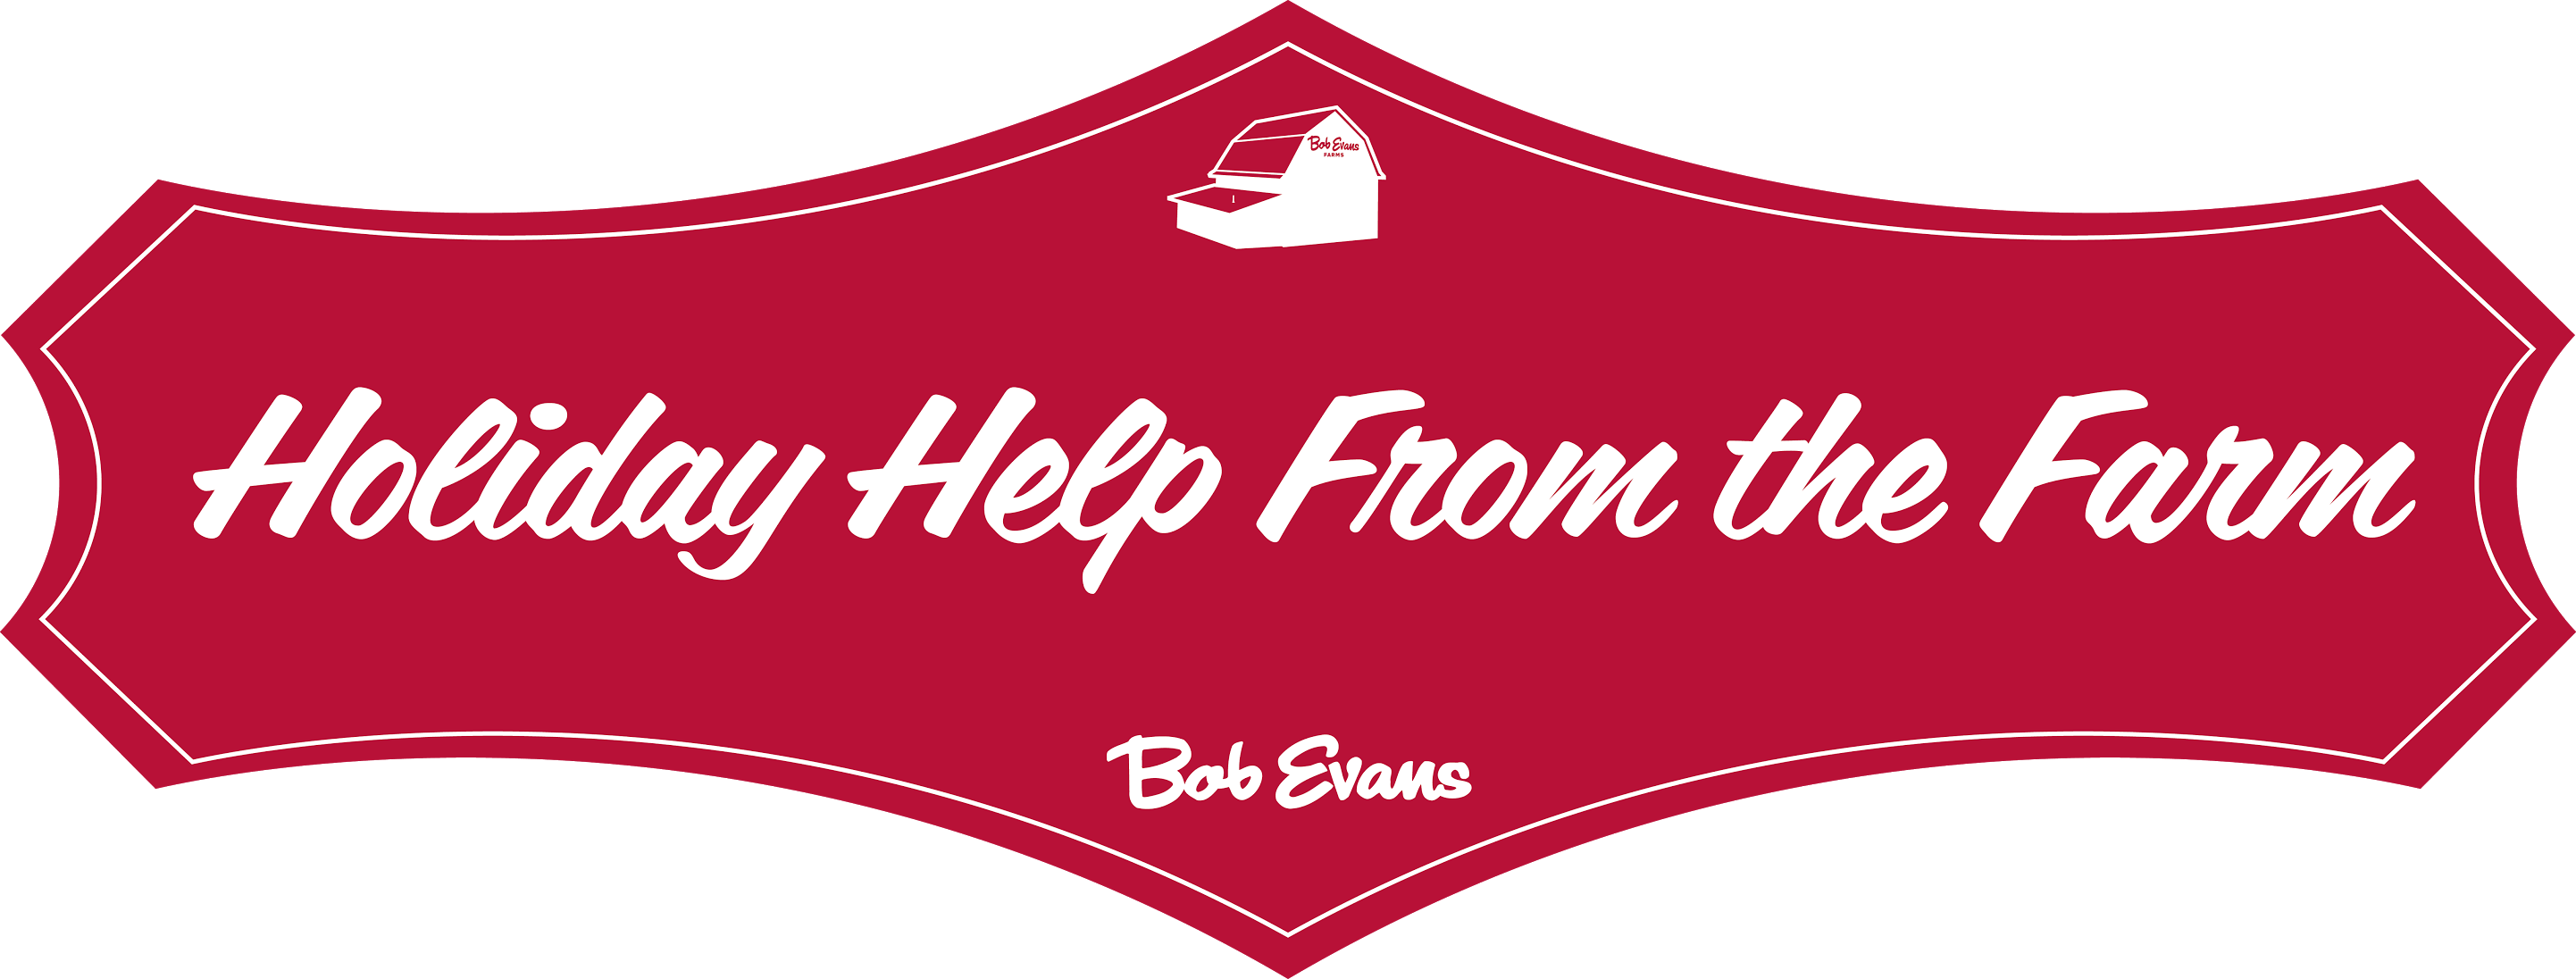 Tips from Bob Evans to Make Your Holidays Less Stressful